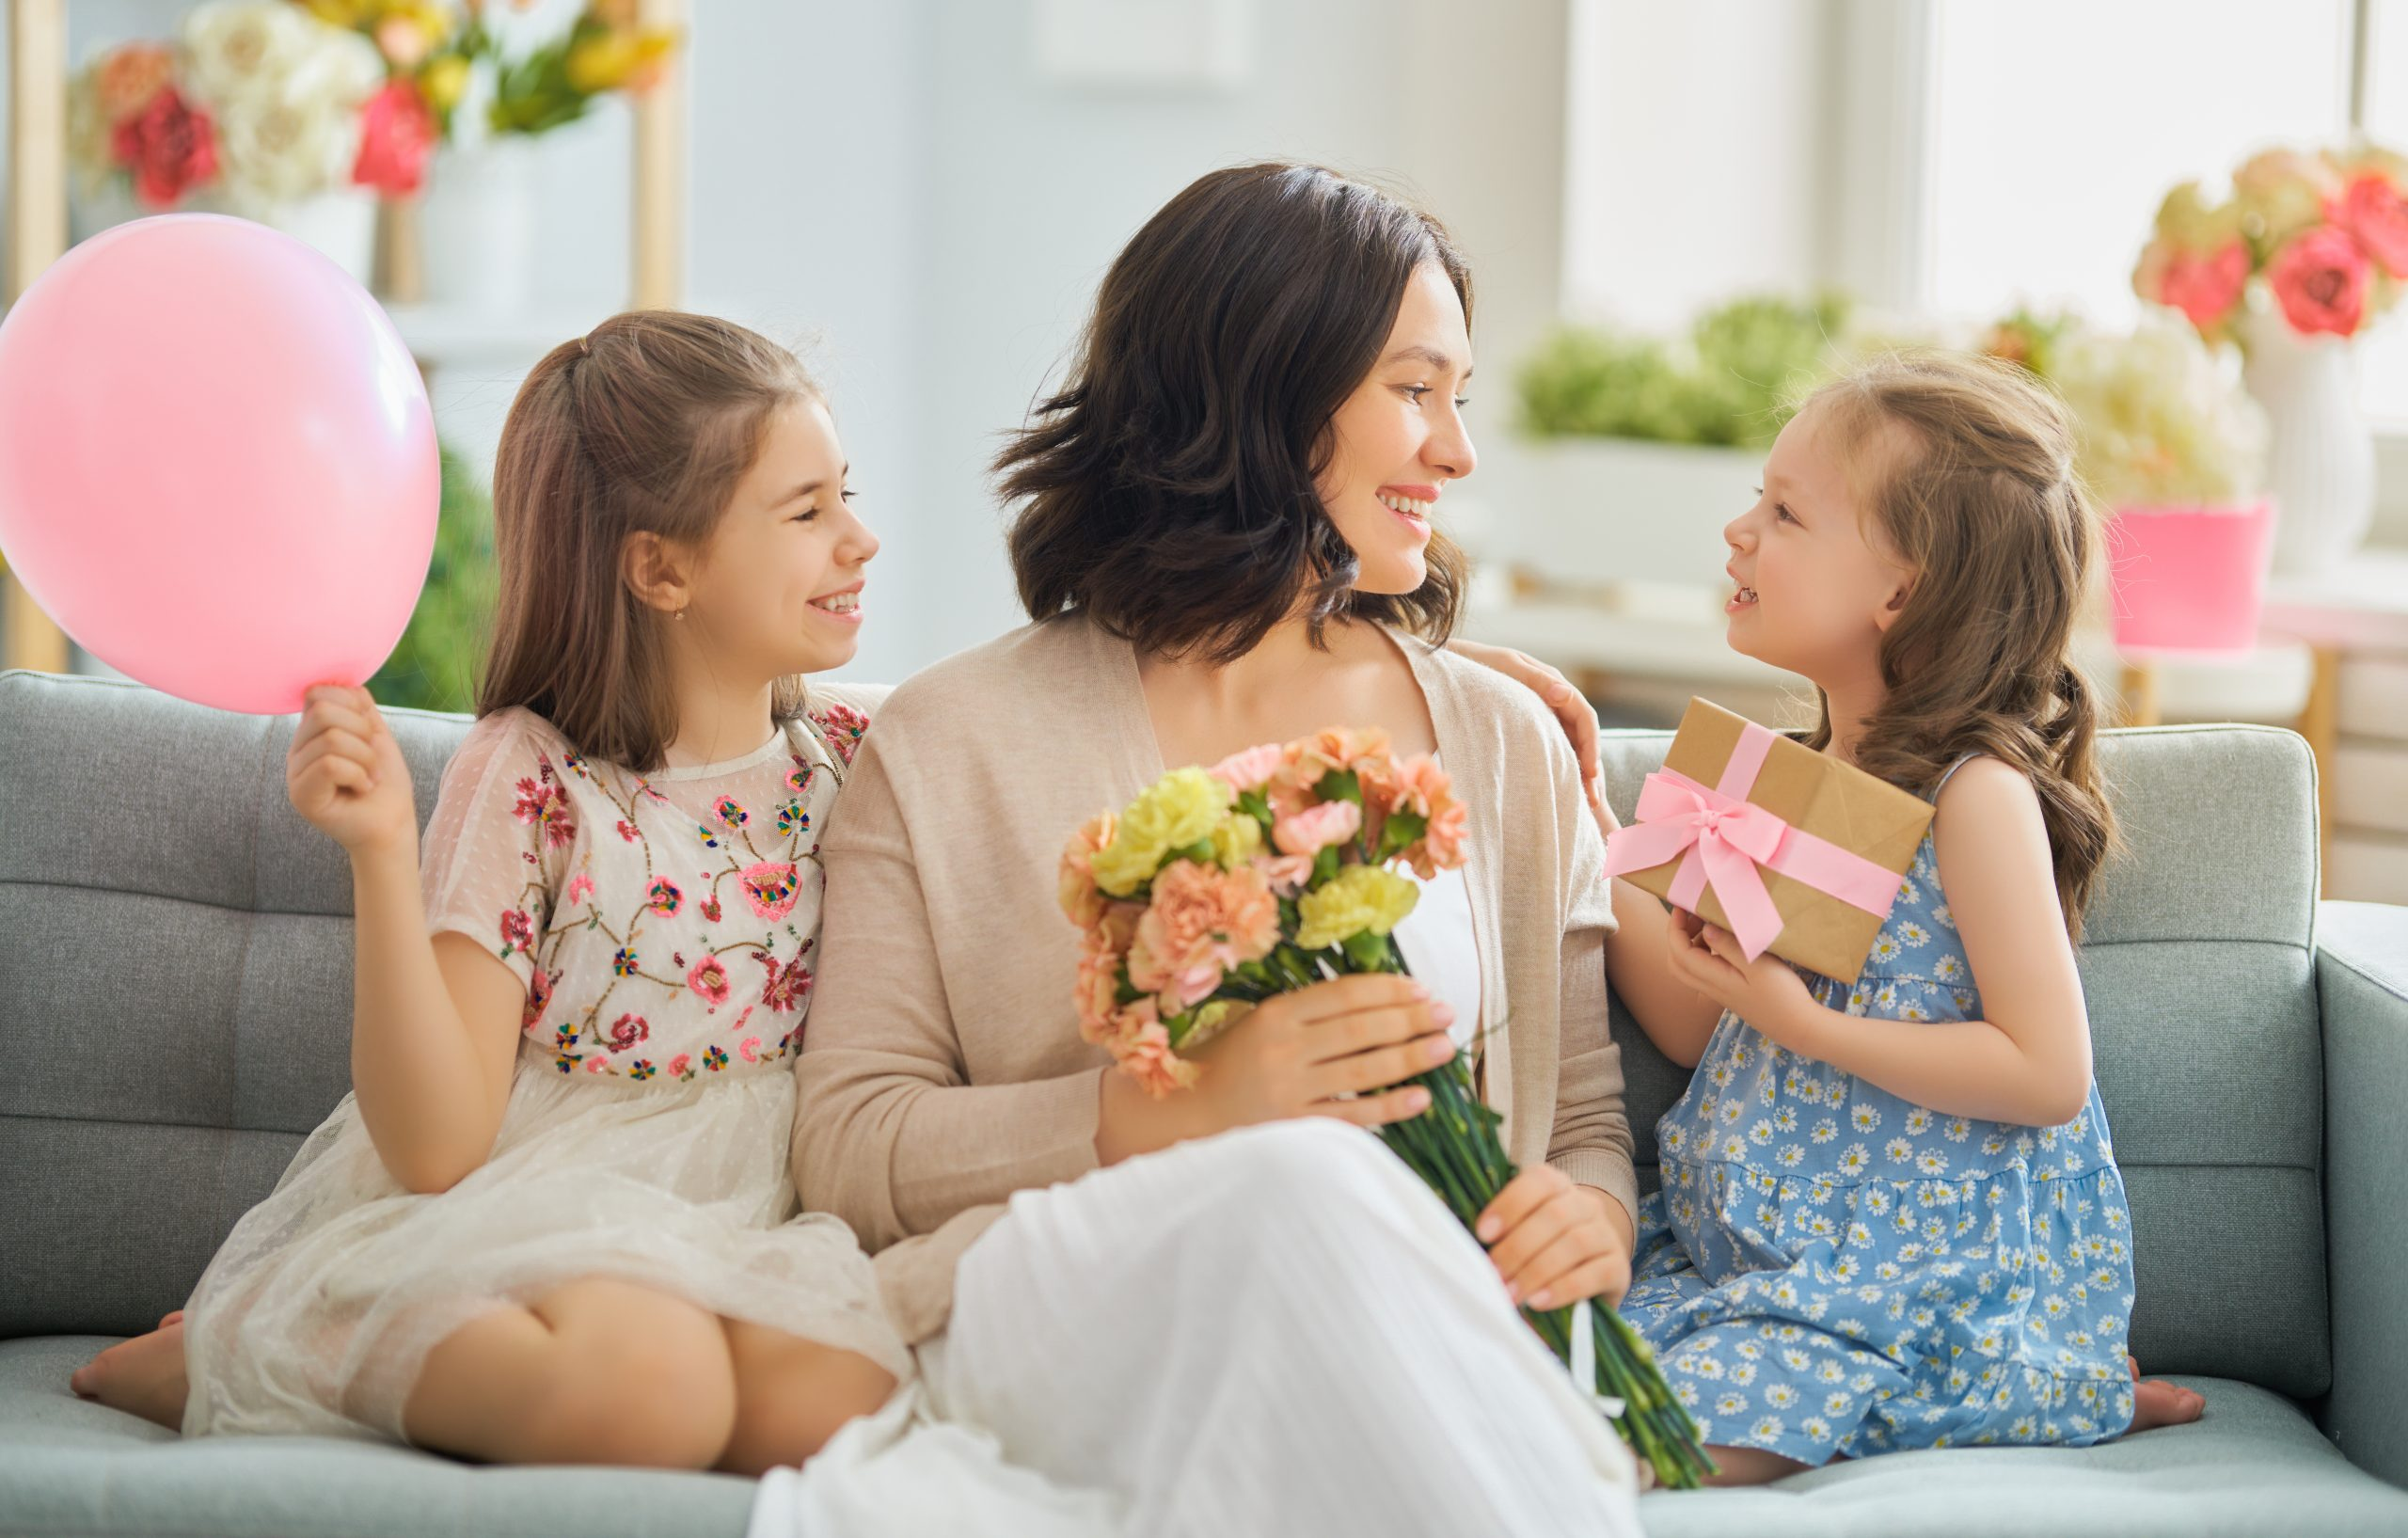 Mother with daughters and flowers